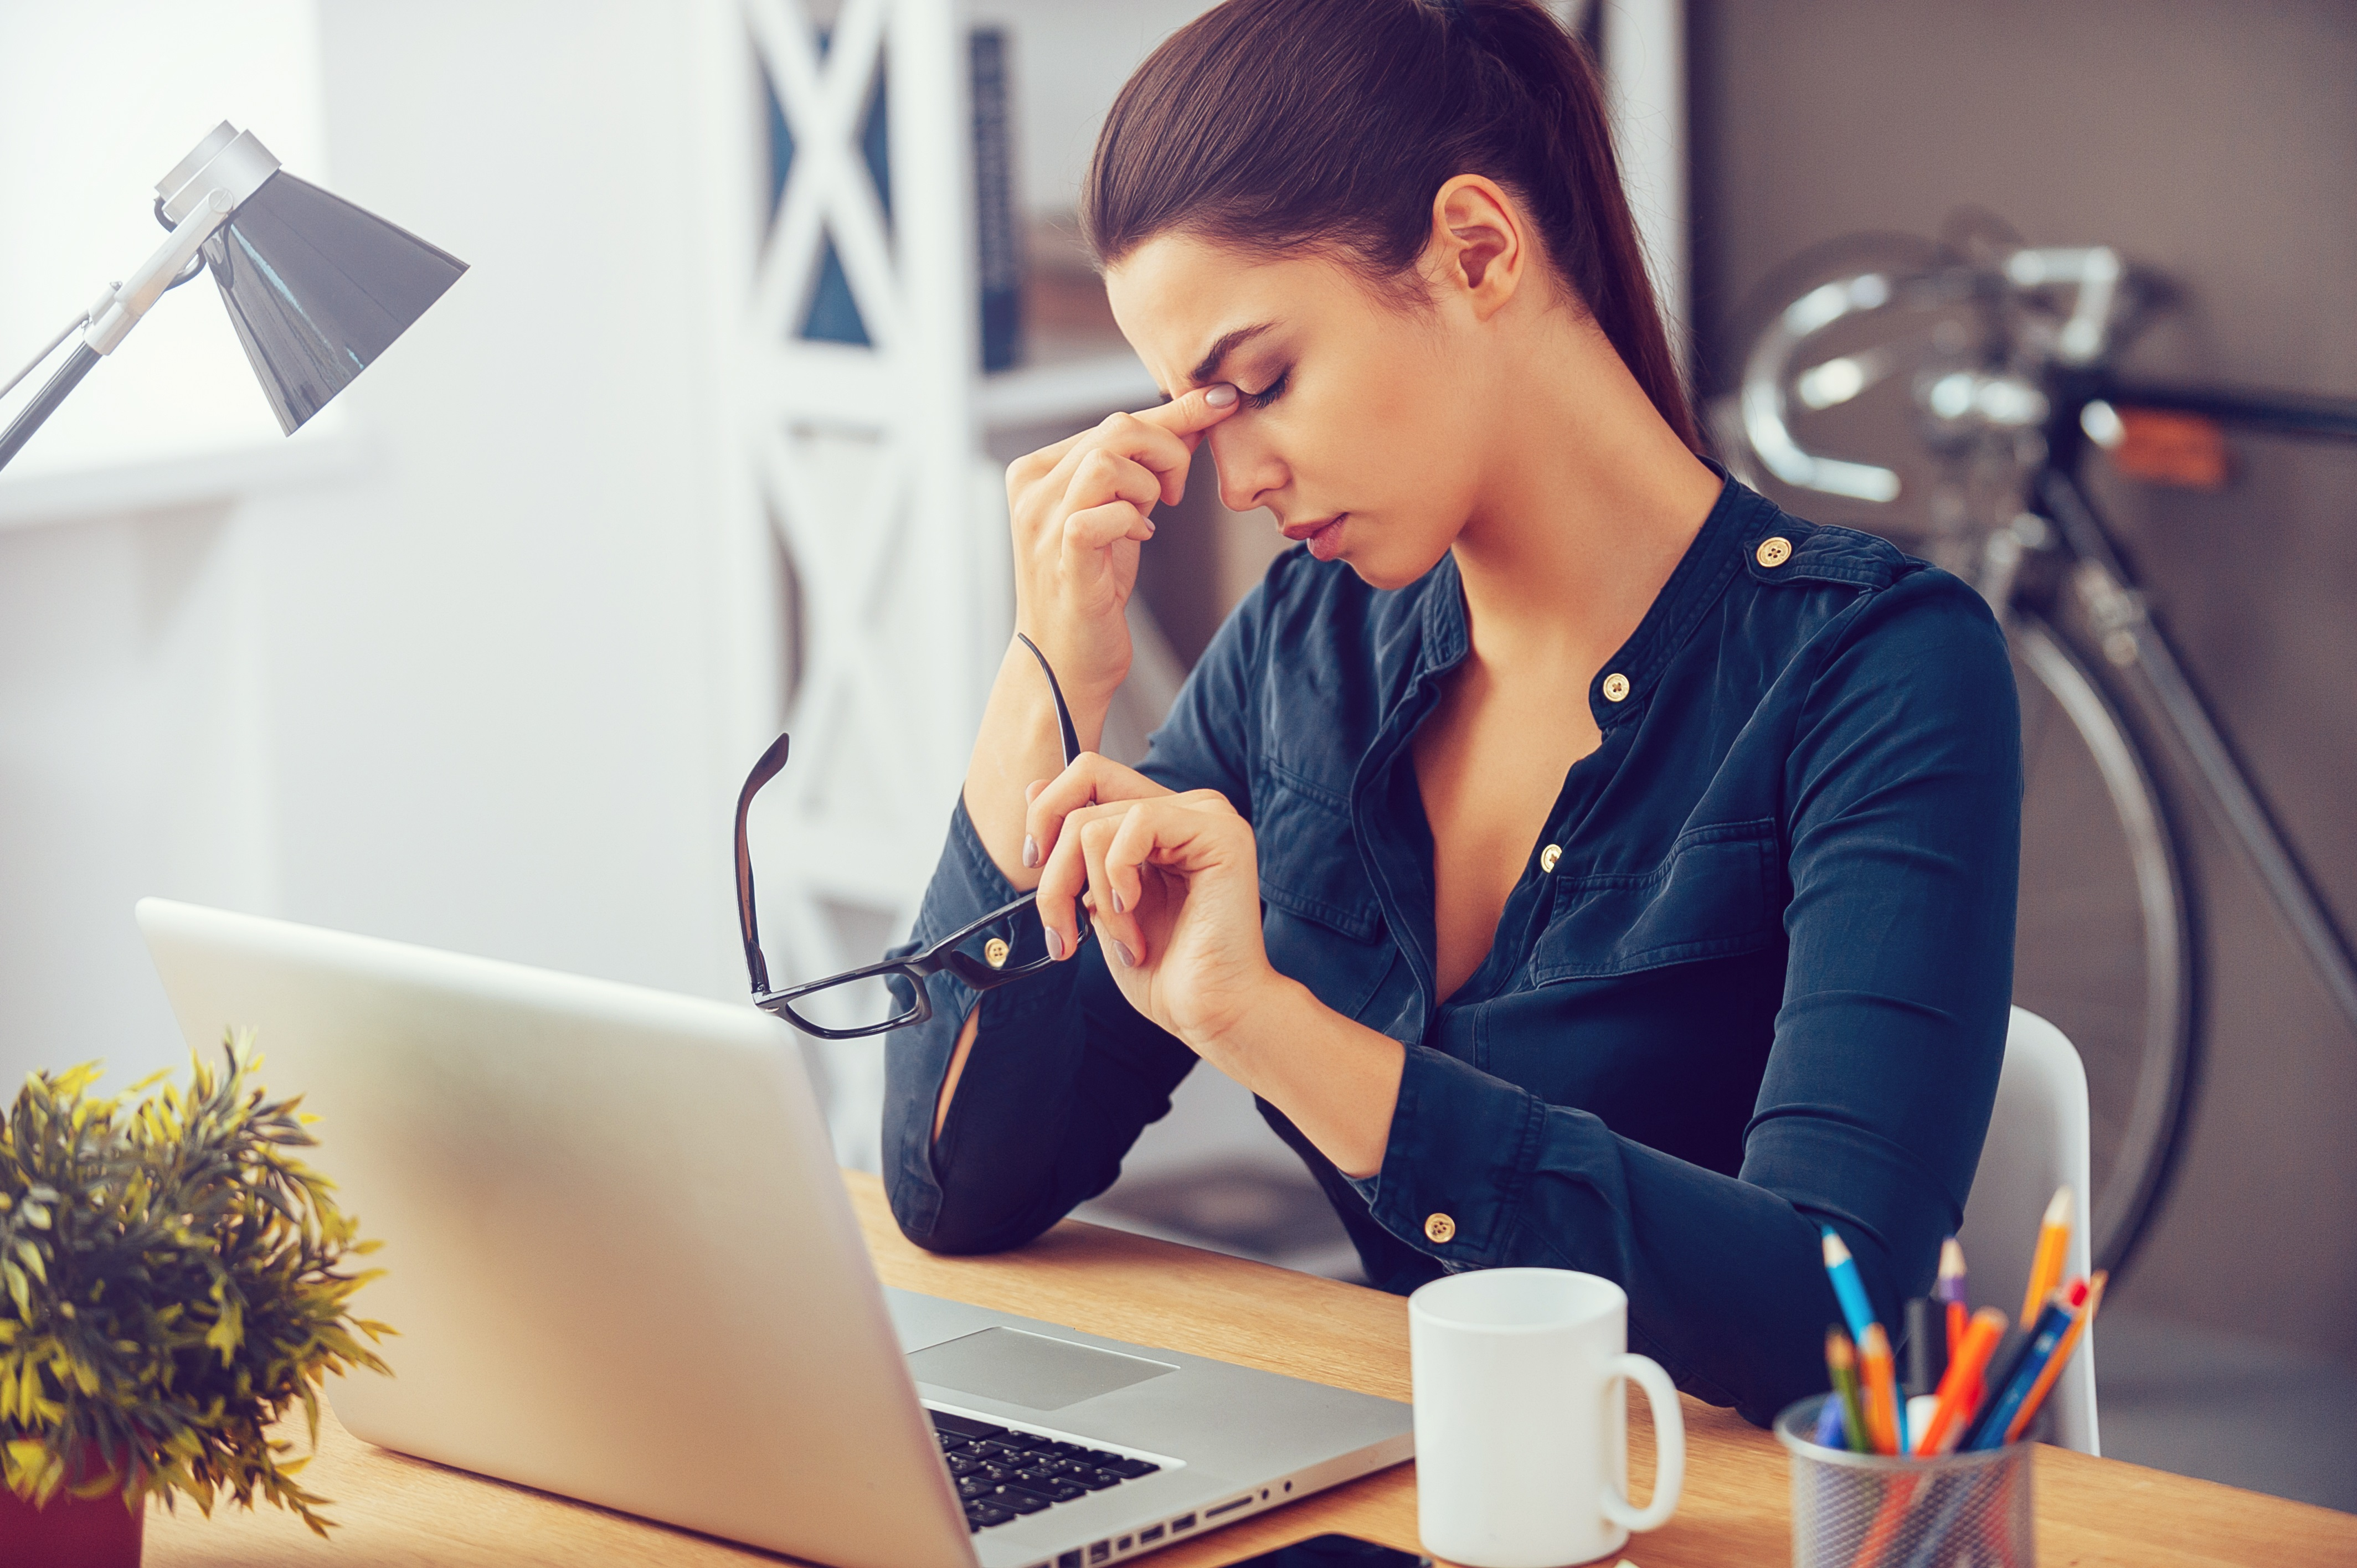 Top Mistakes That New Business Owners Make